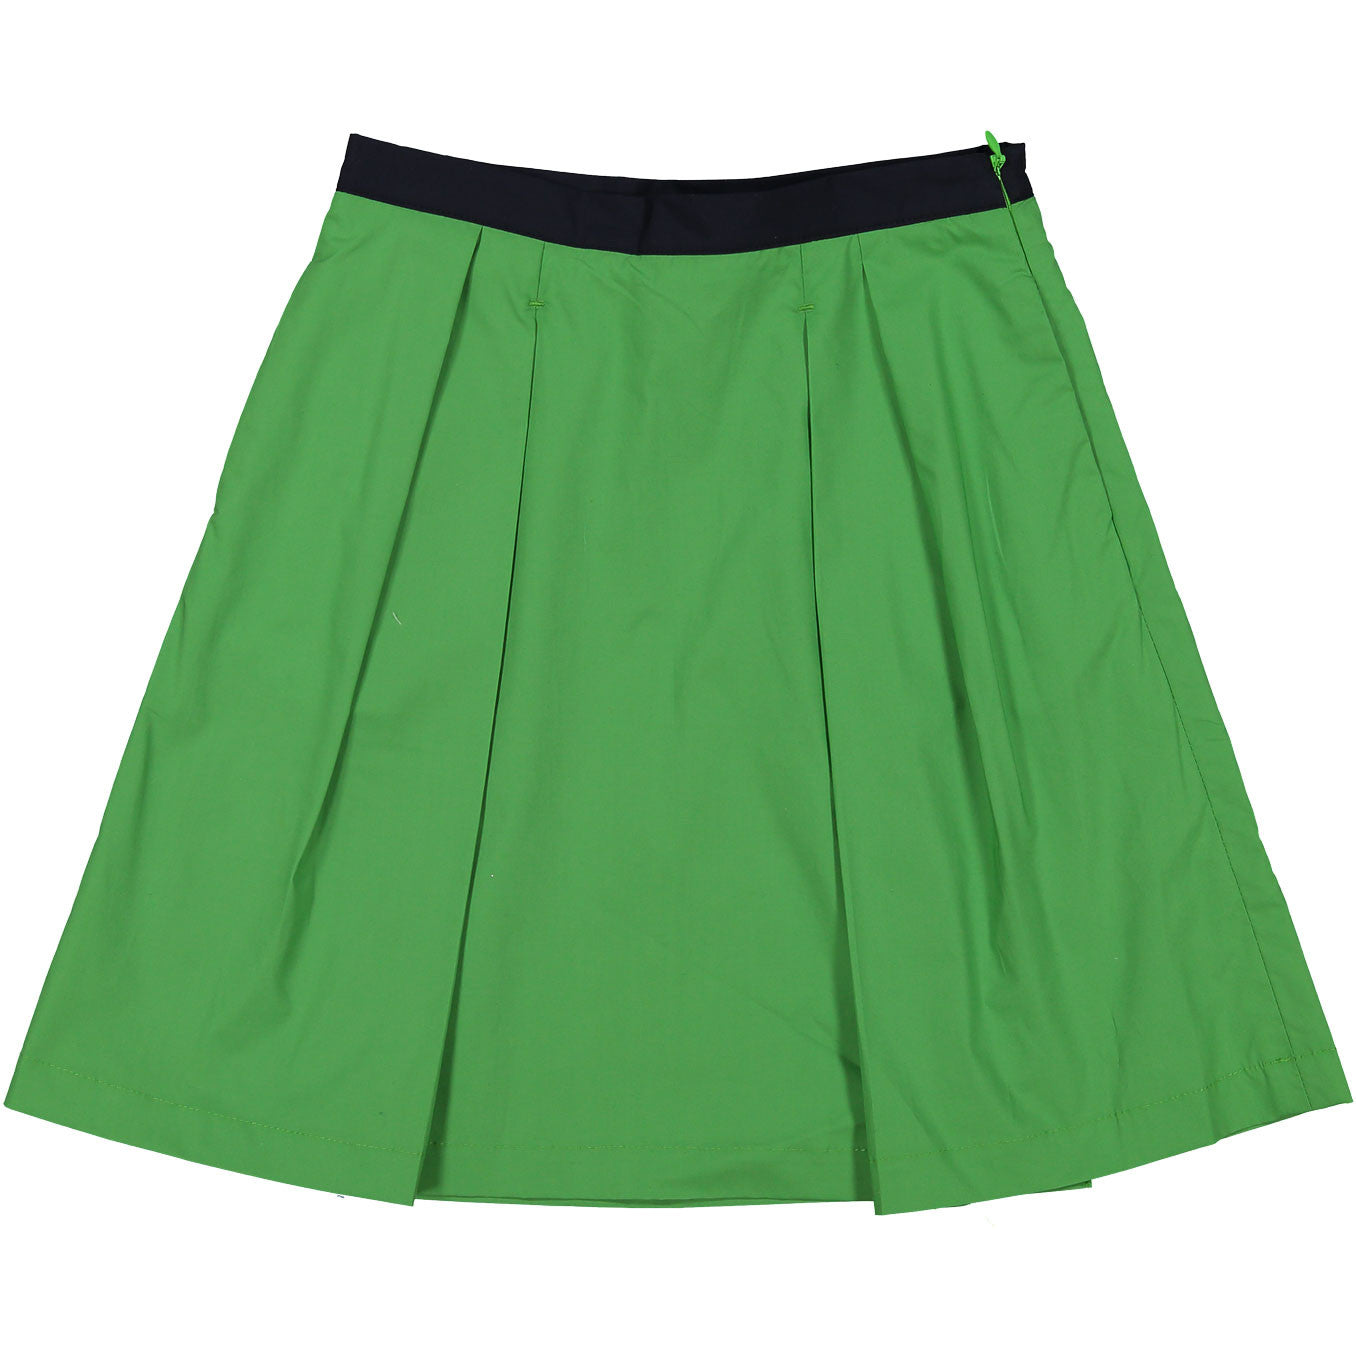 Once Green Pleated Skirt